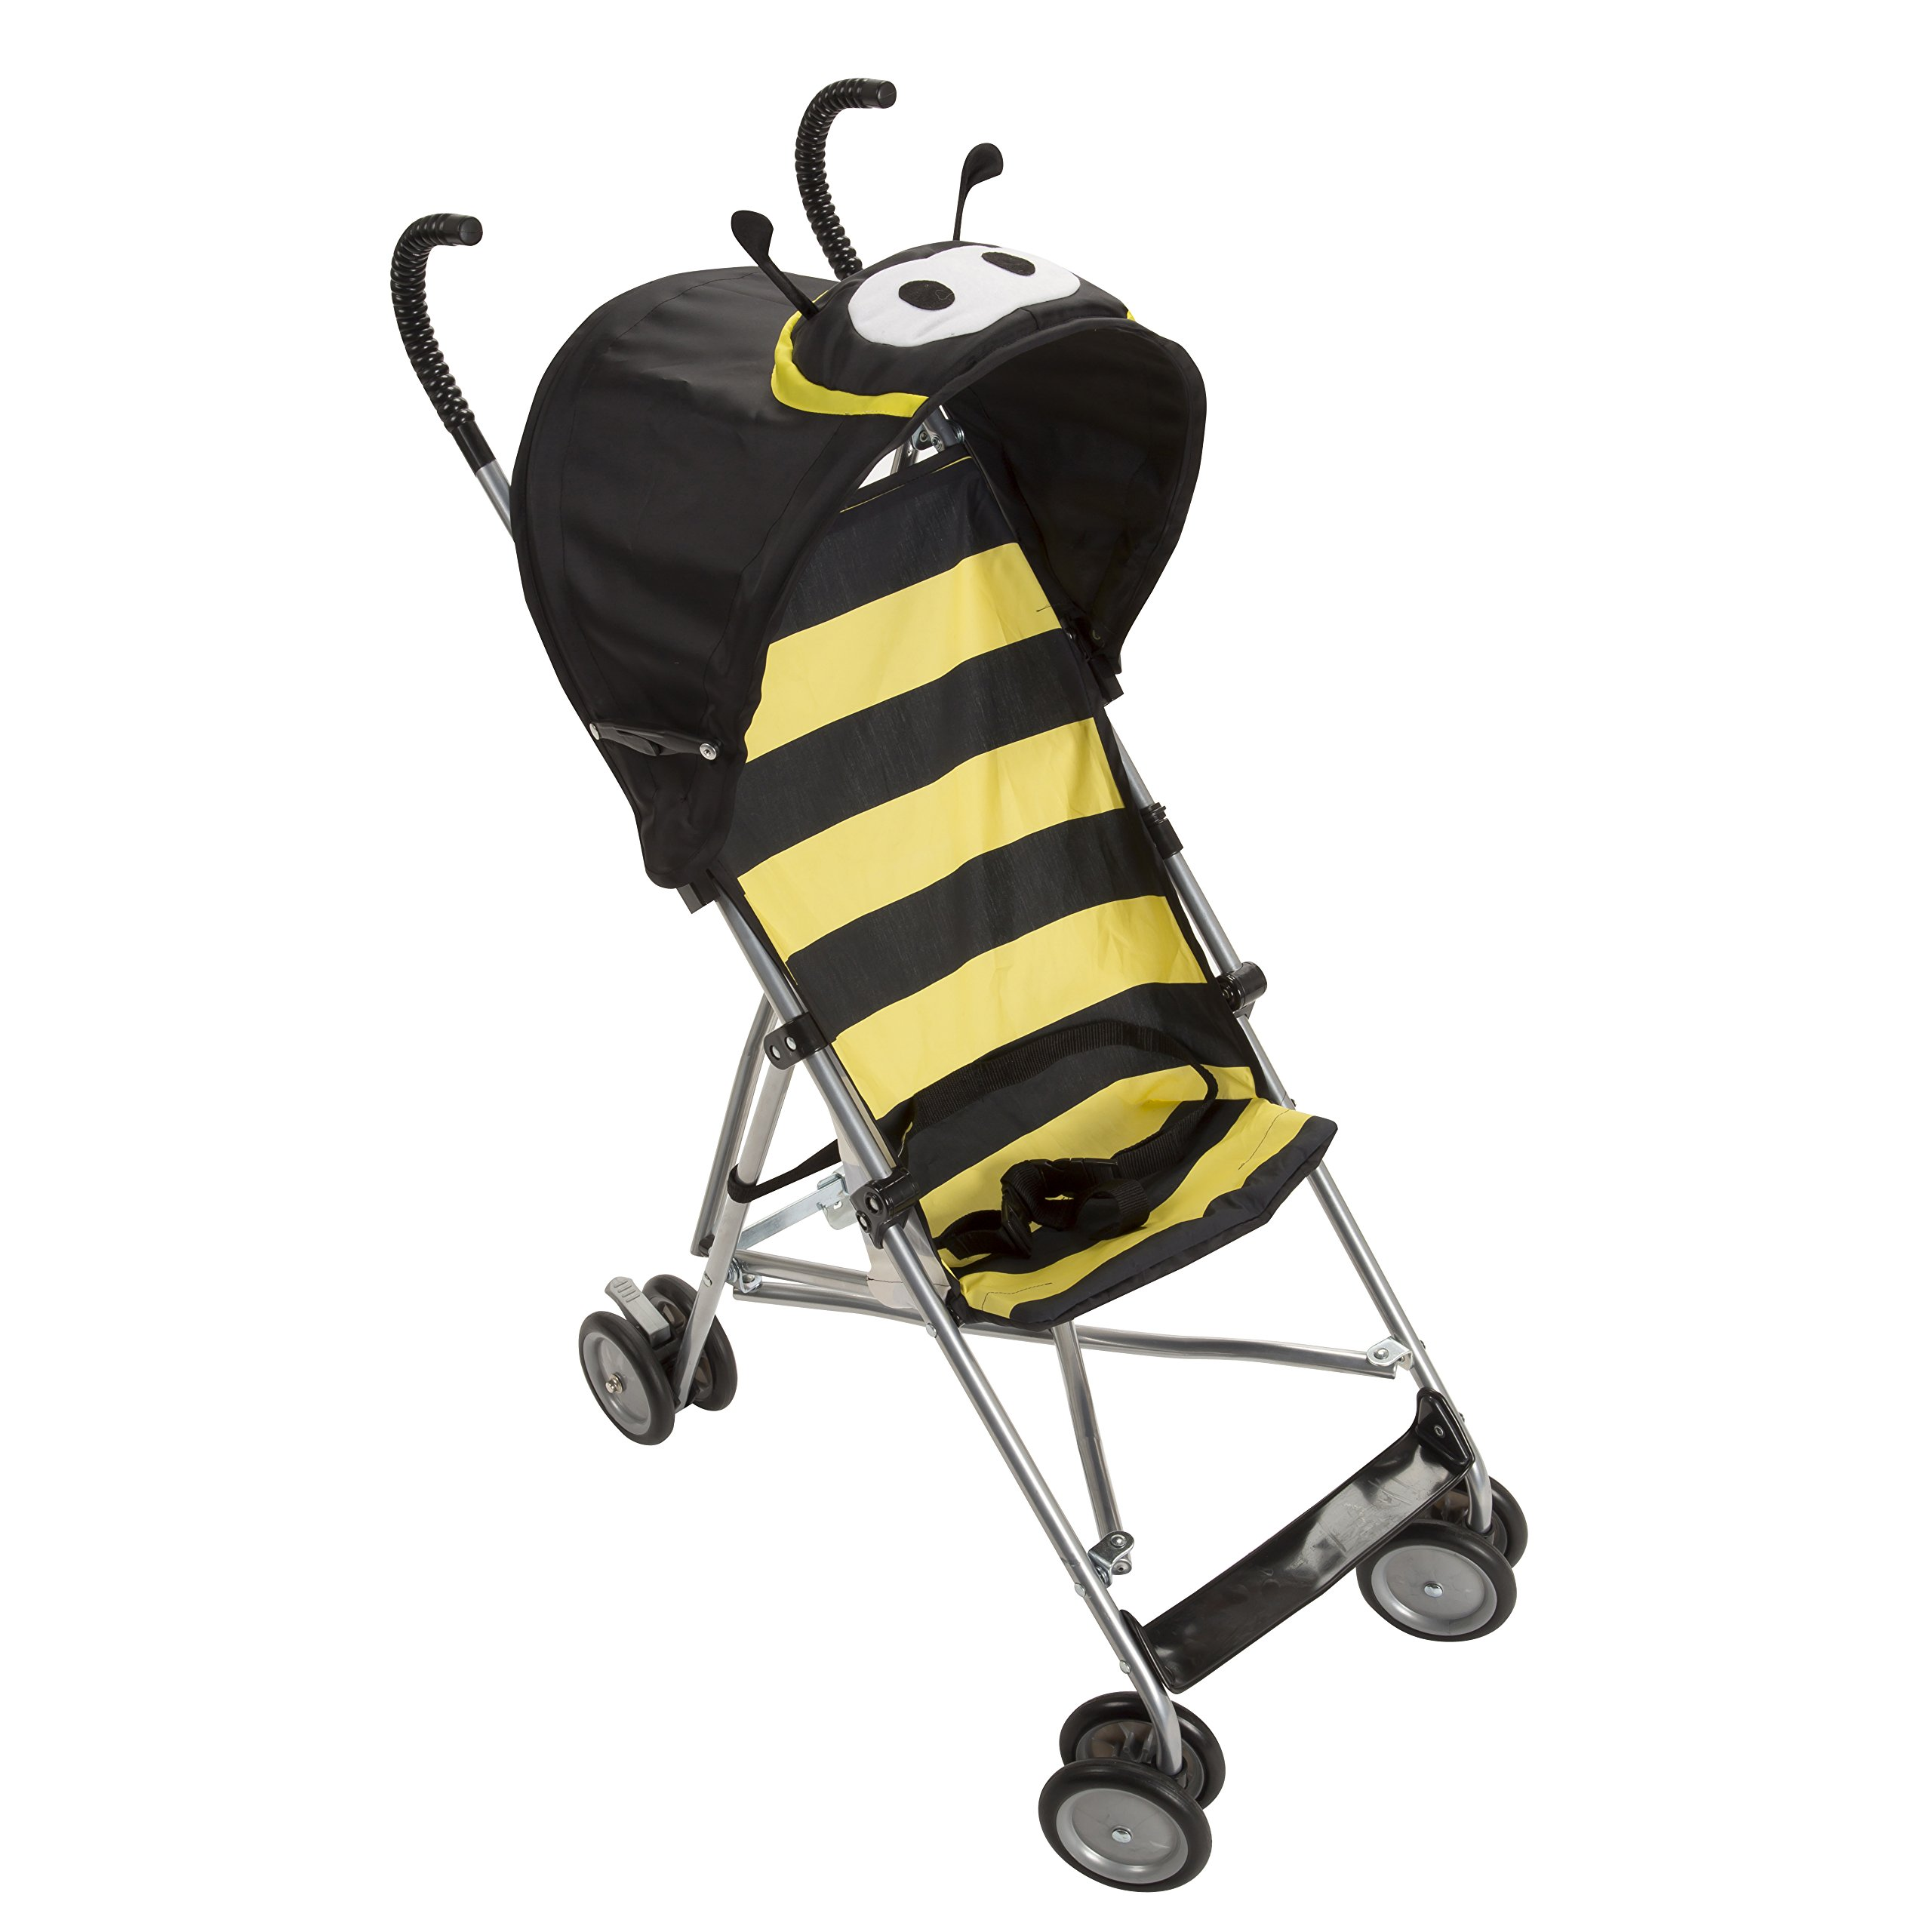 Cosco Character Umbrella Stroller, Bee by Cosco (Image #3)